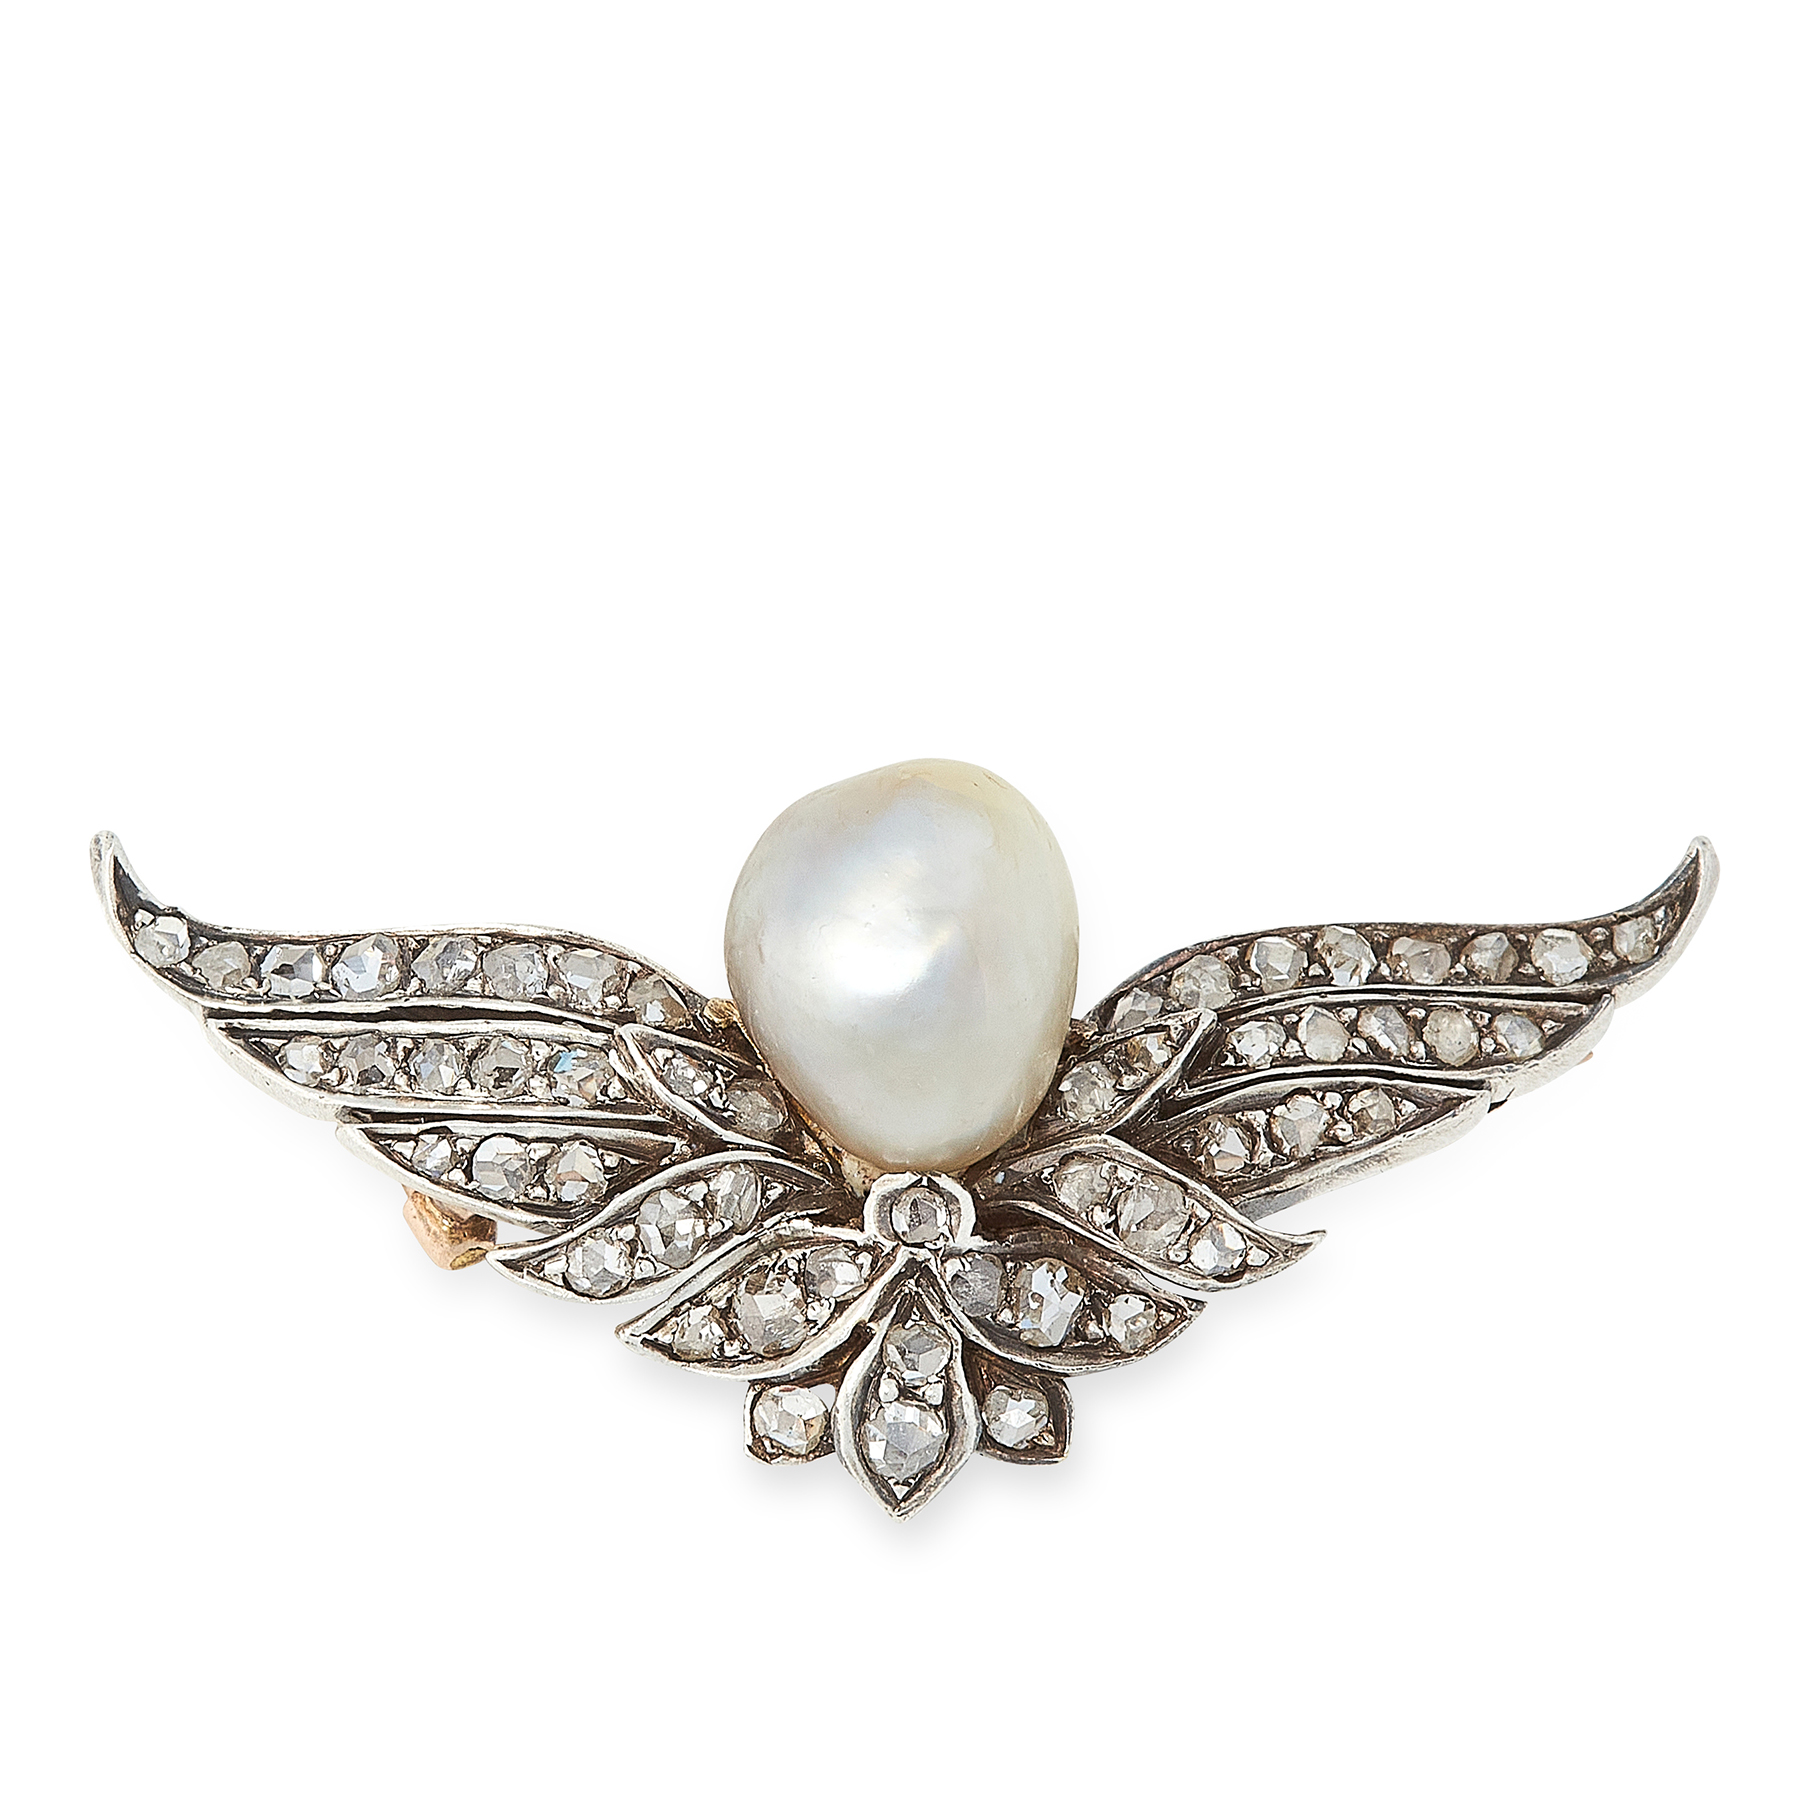 AN ANTIQUE NATURAL PEARL AND DIAMOND BROOCH, LATE 19TH CENTURY in yellow gold and silver, set with a